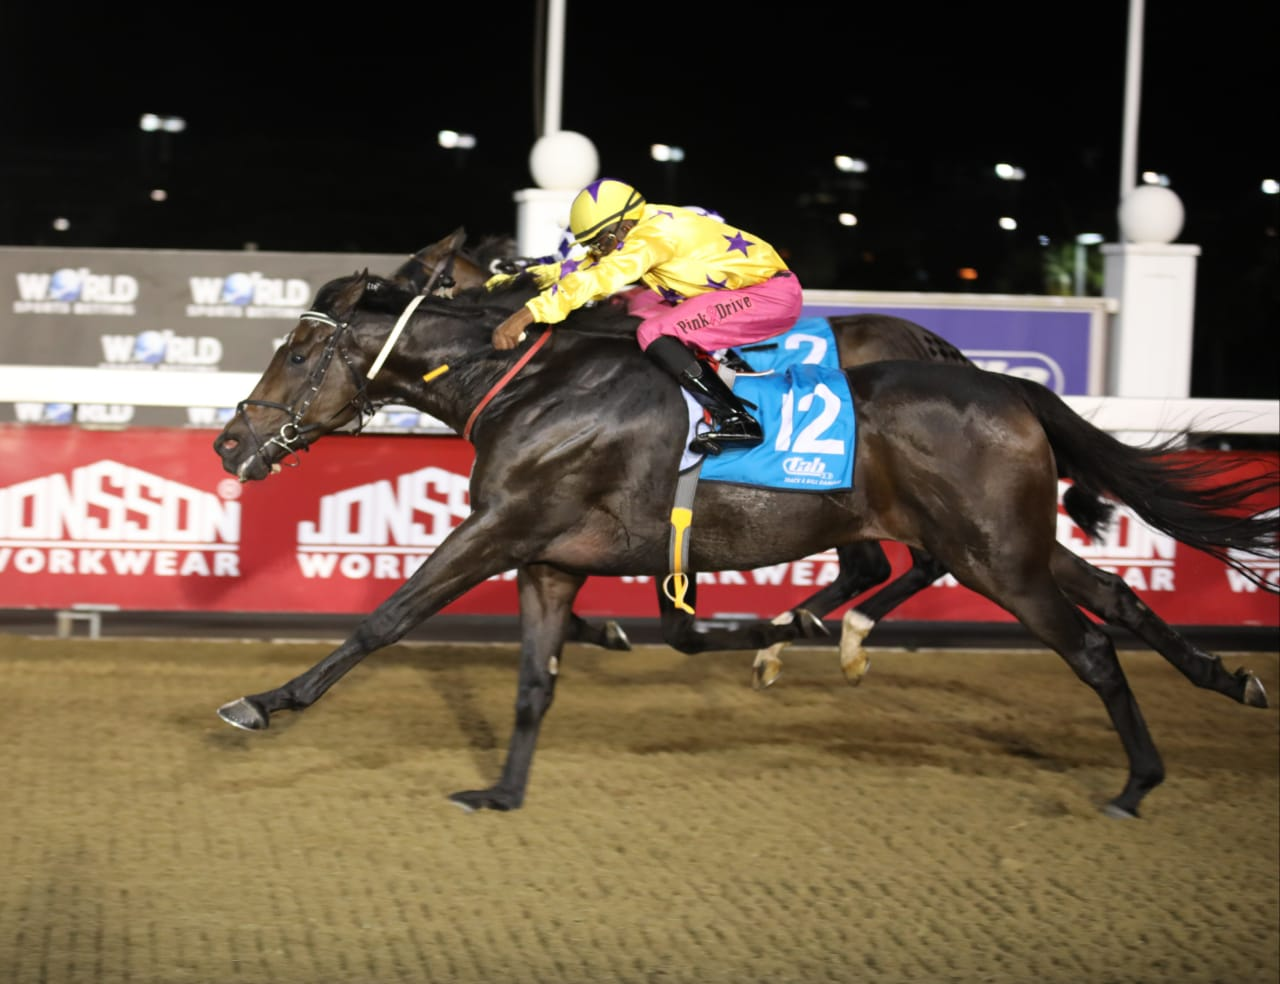 LAUREN OF ROCHELLE winning at Hollywoodbets Greyville - March 29th, 2019